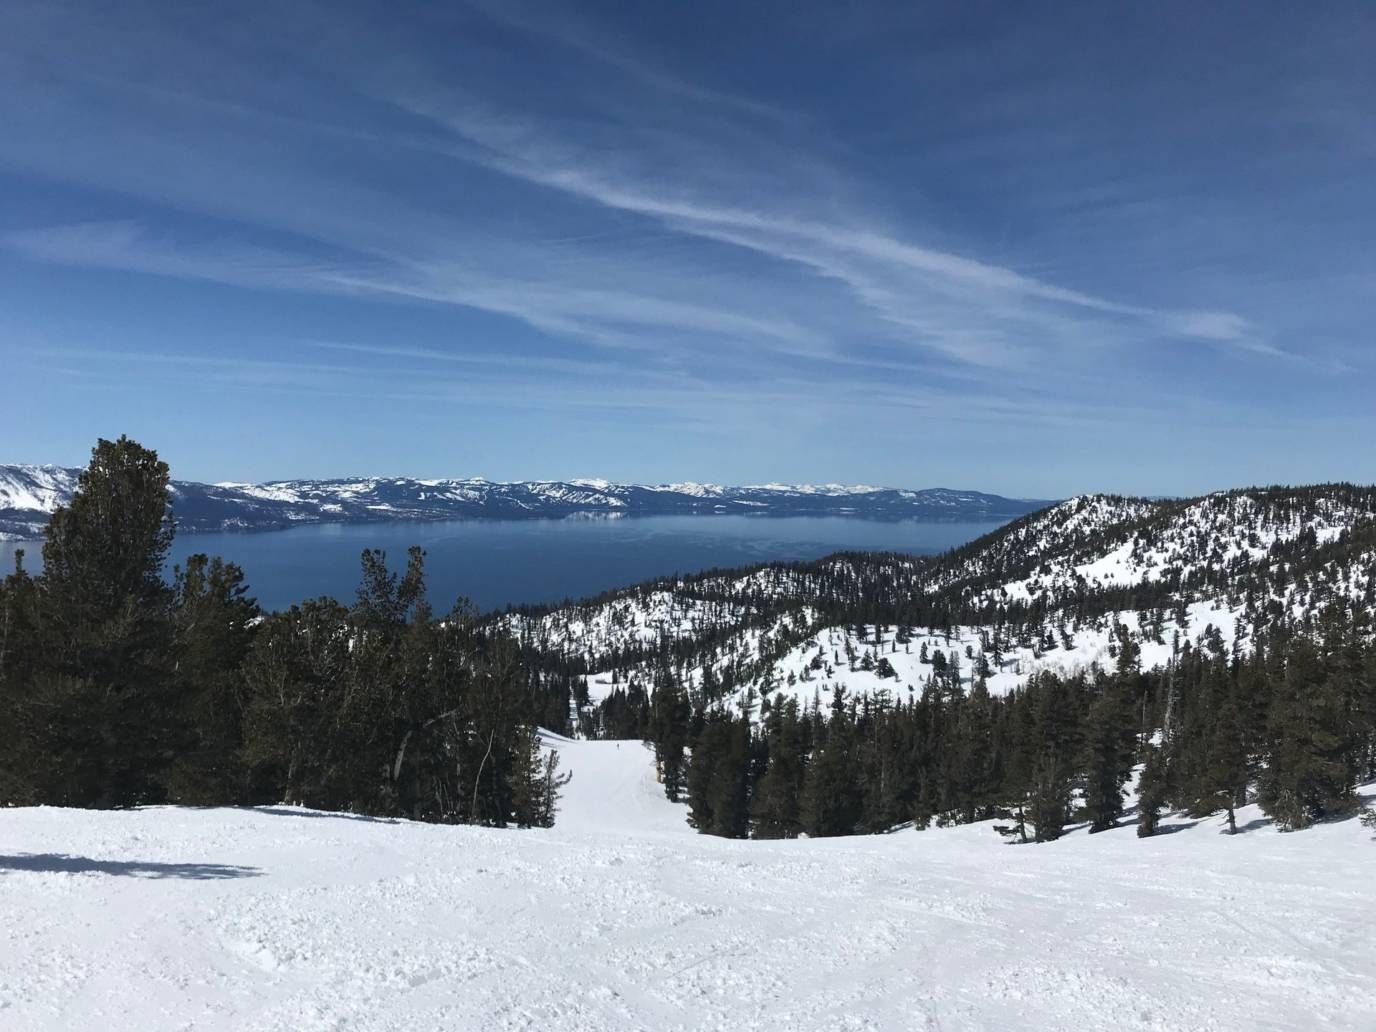 Lake Tahoe Nearly Full After Stormy Winter Potentially Enough Water For Three Summers Lake Tahoe Tahoe Tahoe City